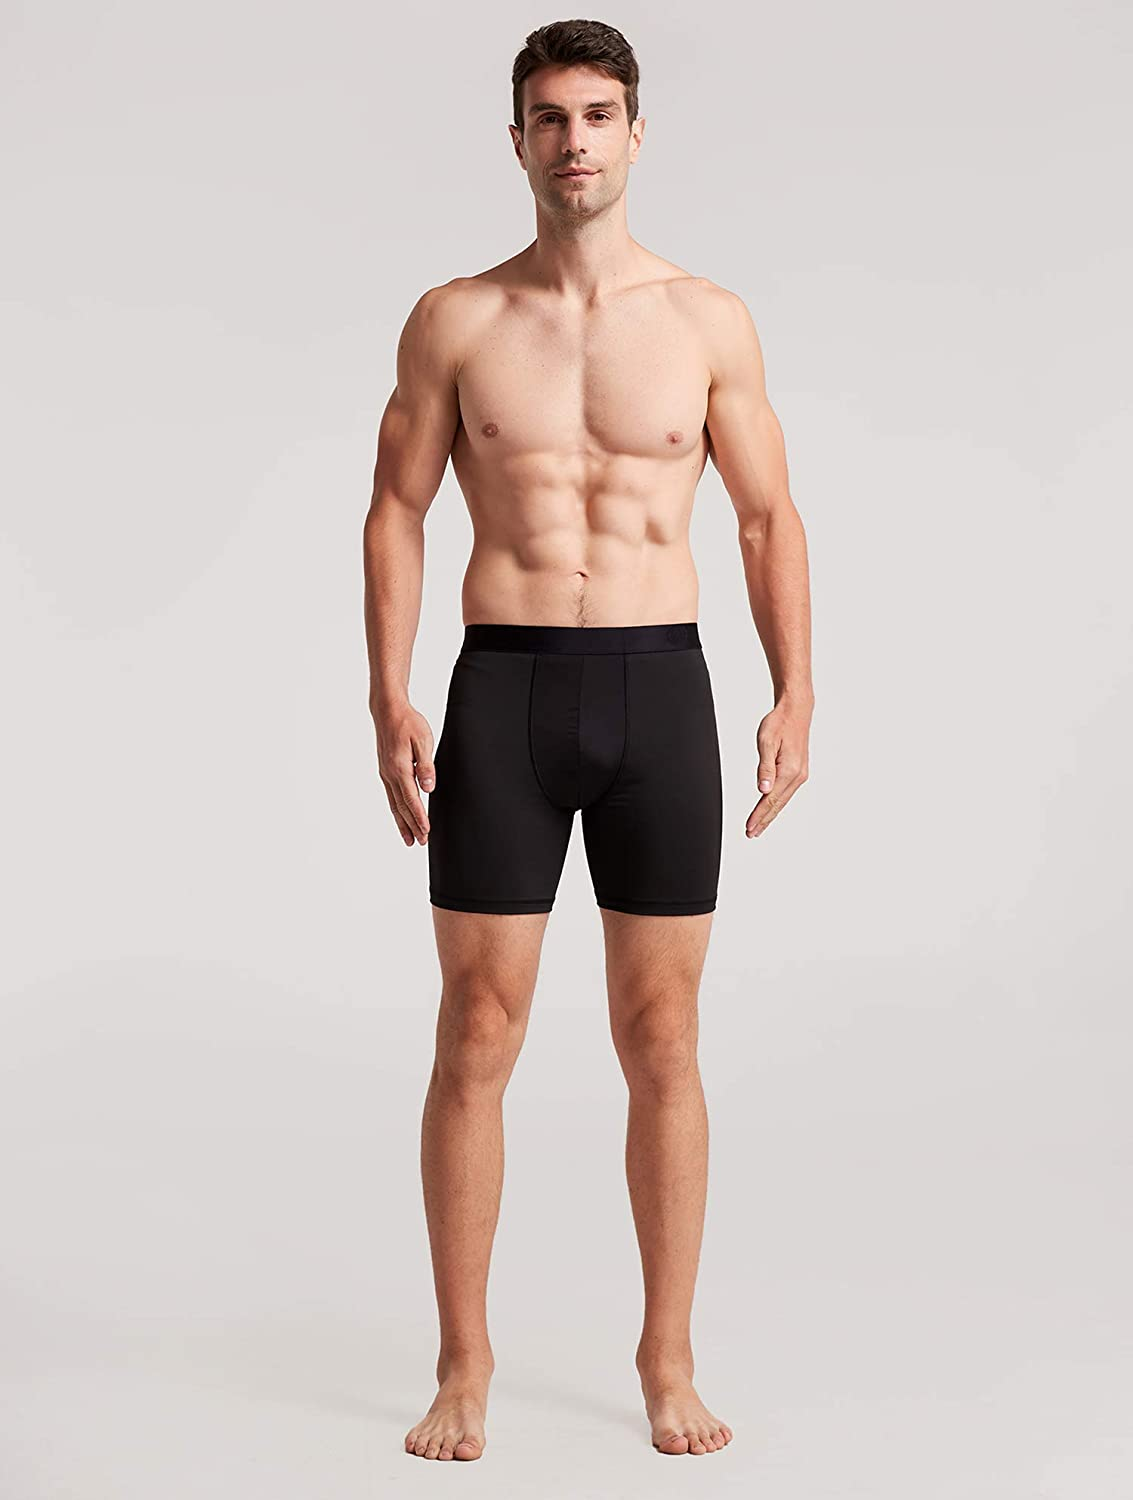 WANDER Mens Sport Underwear 3-Pack for Men Performance 6-inch Athletic Boxer Brief Tights Active Workout Underwear M/L/XL/XXL at  Men's Clothing store